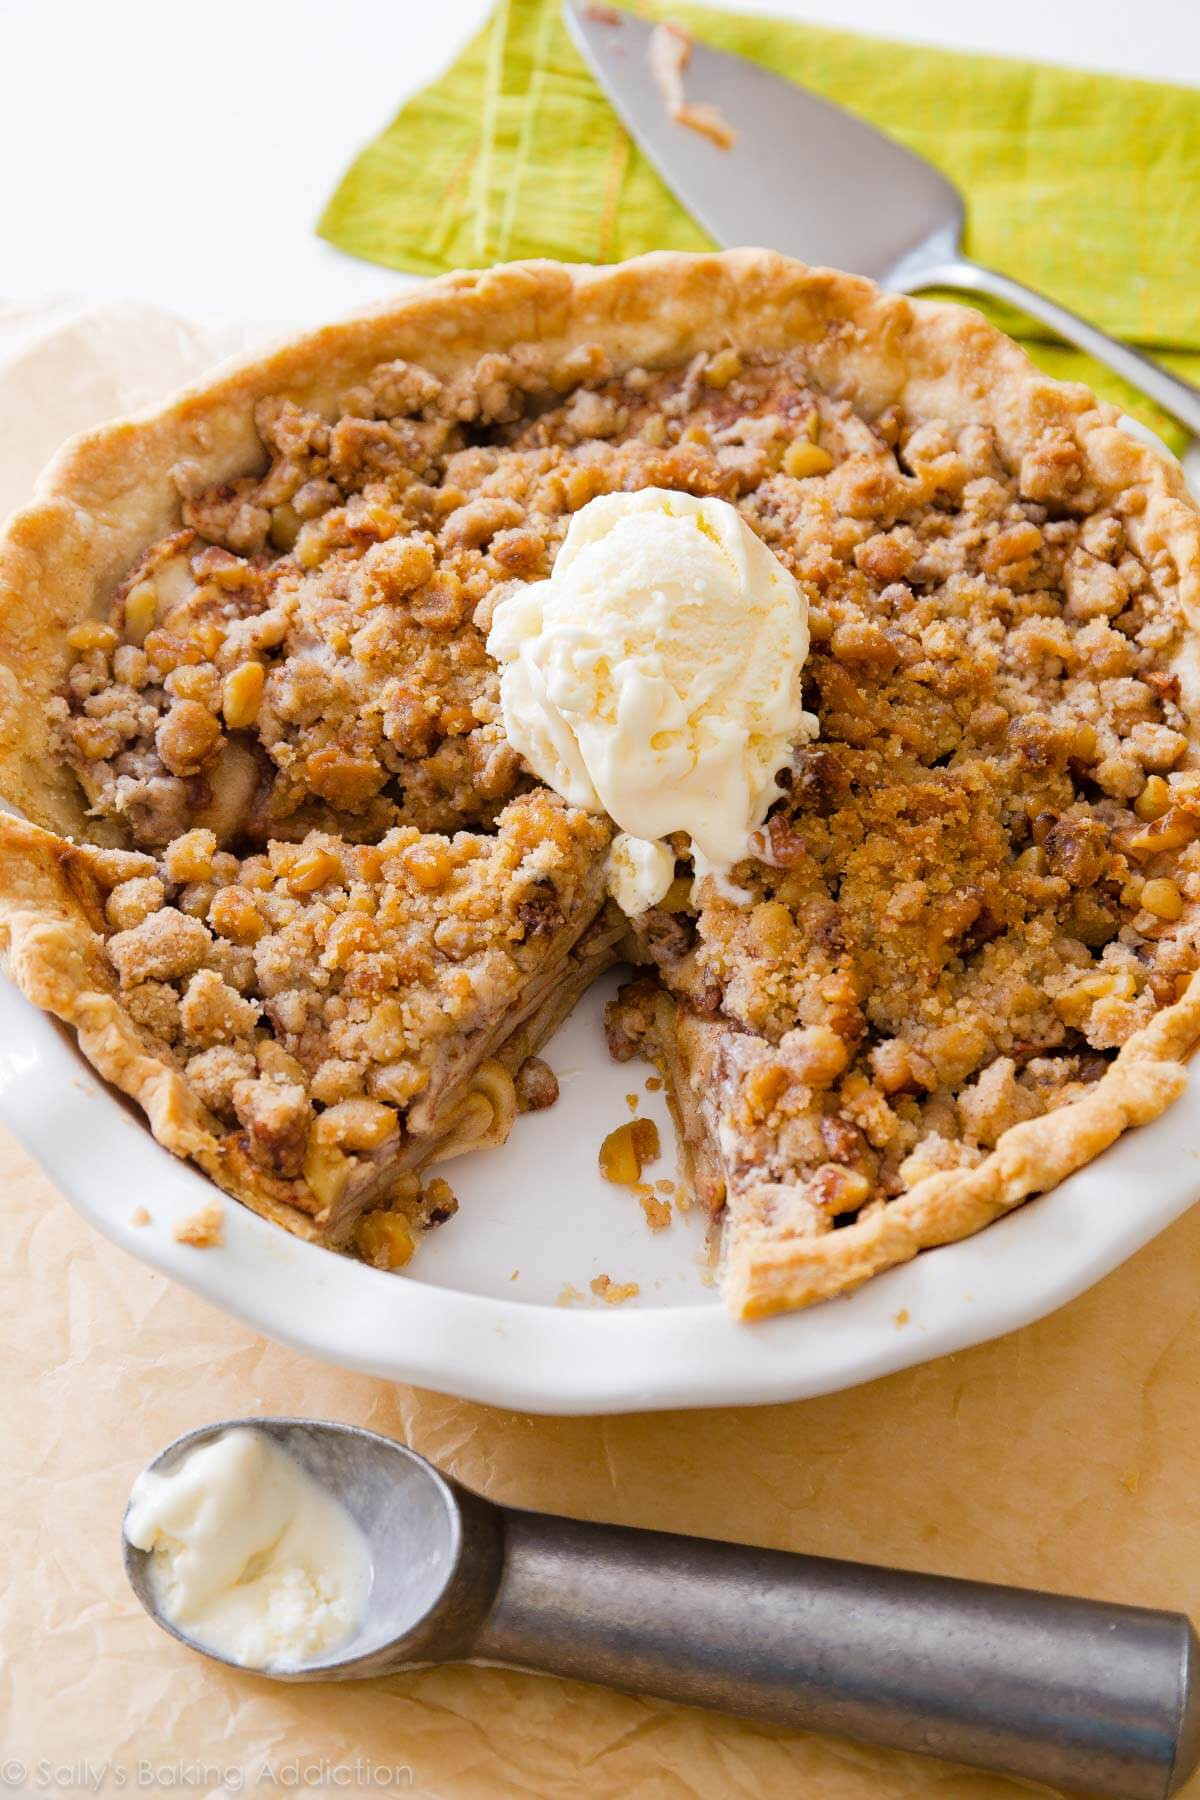 Apple Pie With Crumble Topping  Apple Crumble Pie Sallys Baking Addiction